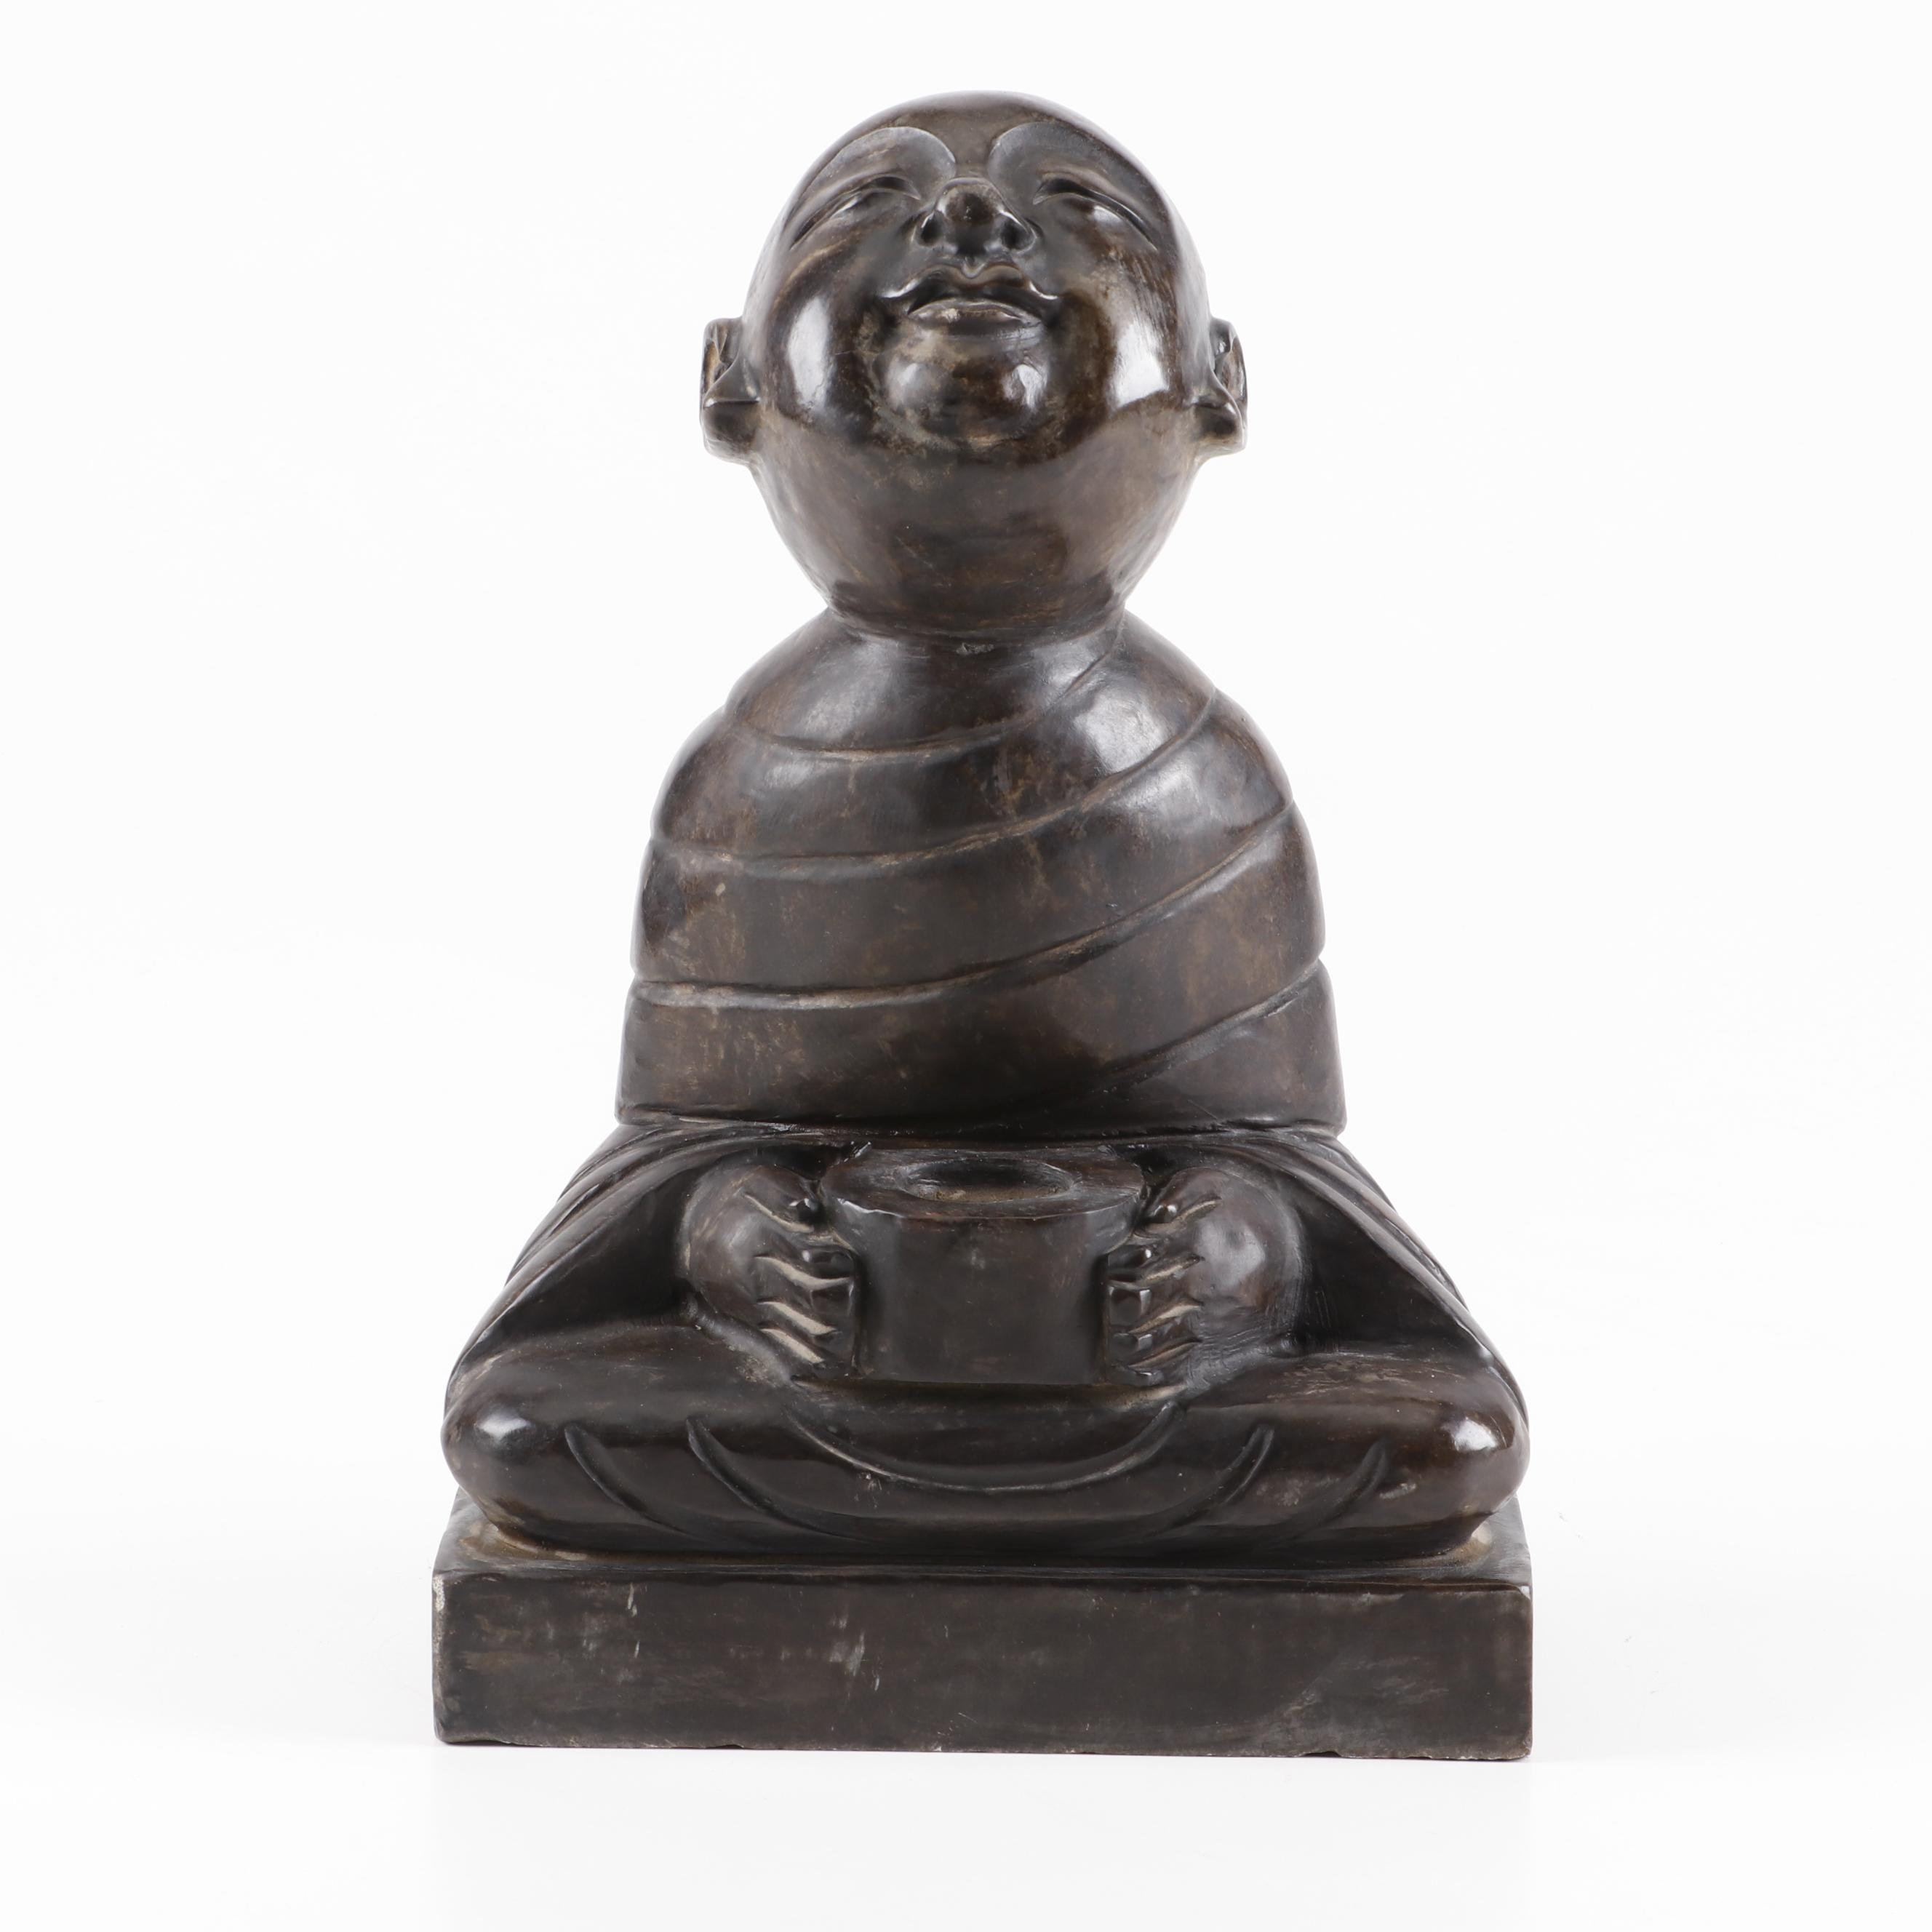 Stone Sculpture of a Monk